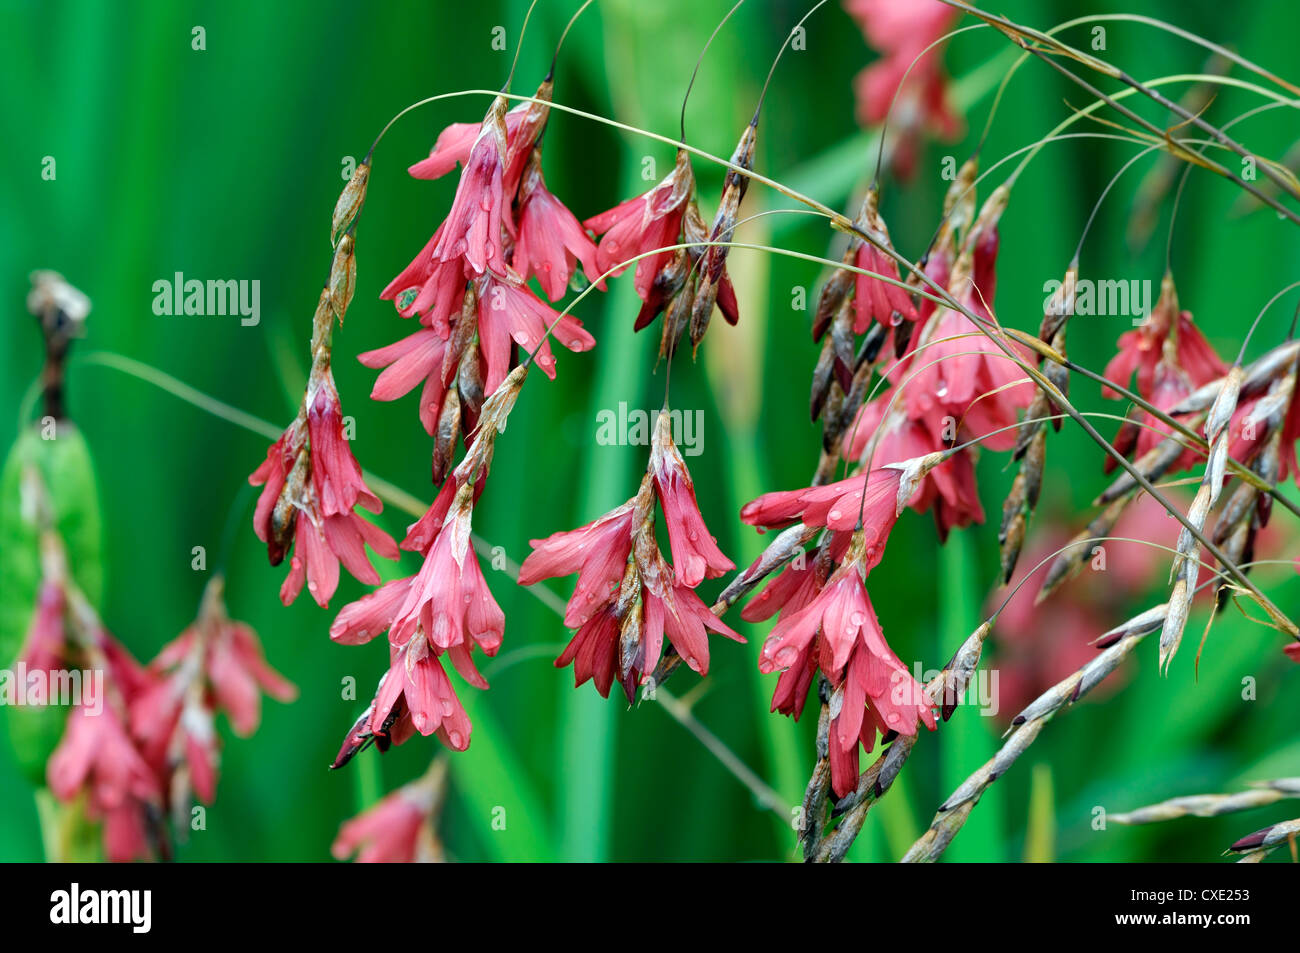 Dierama Igneum Pink Coral Flowers Perennials Arching Dangling